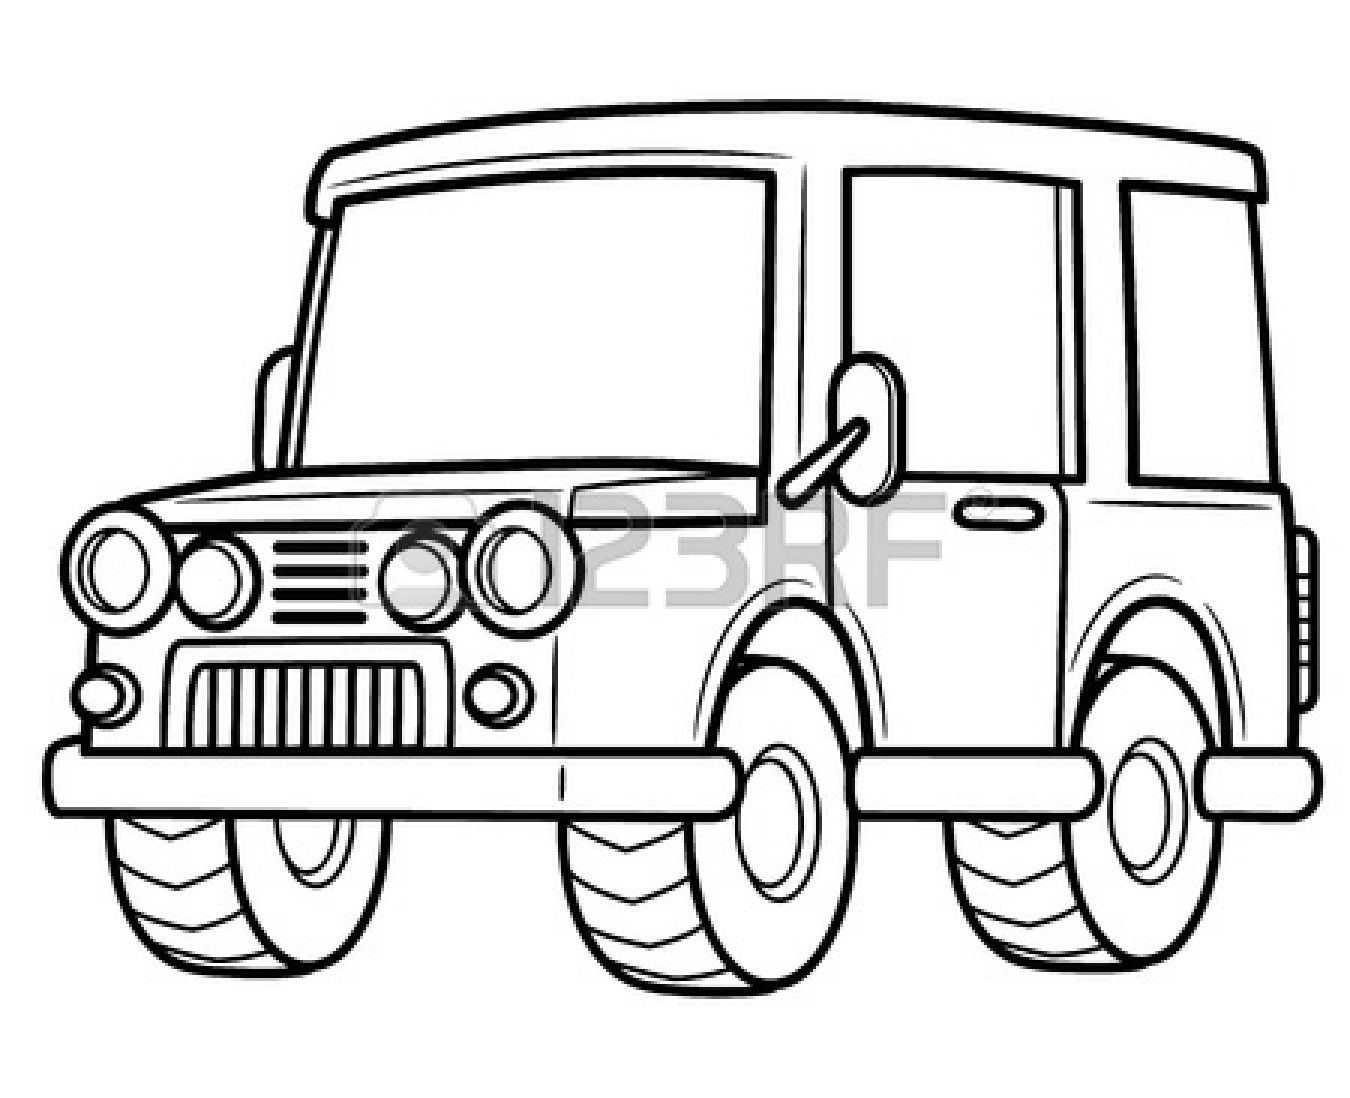 1350x1098 Toy Truck Clipart Black And White Trash Truck Coloring Pages Dump